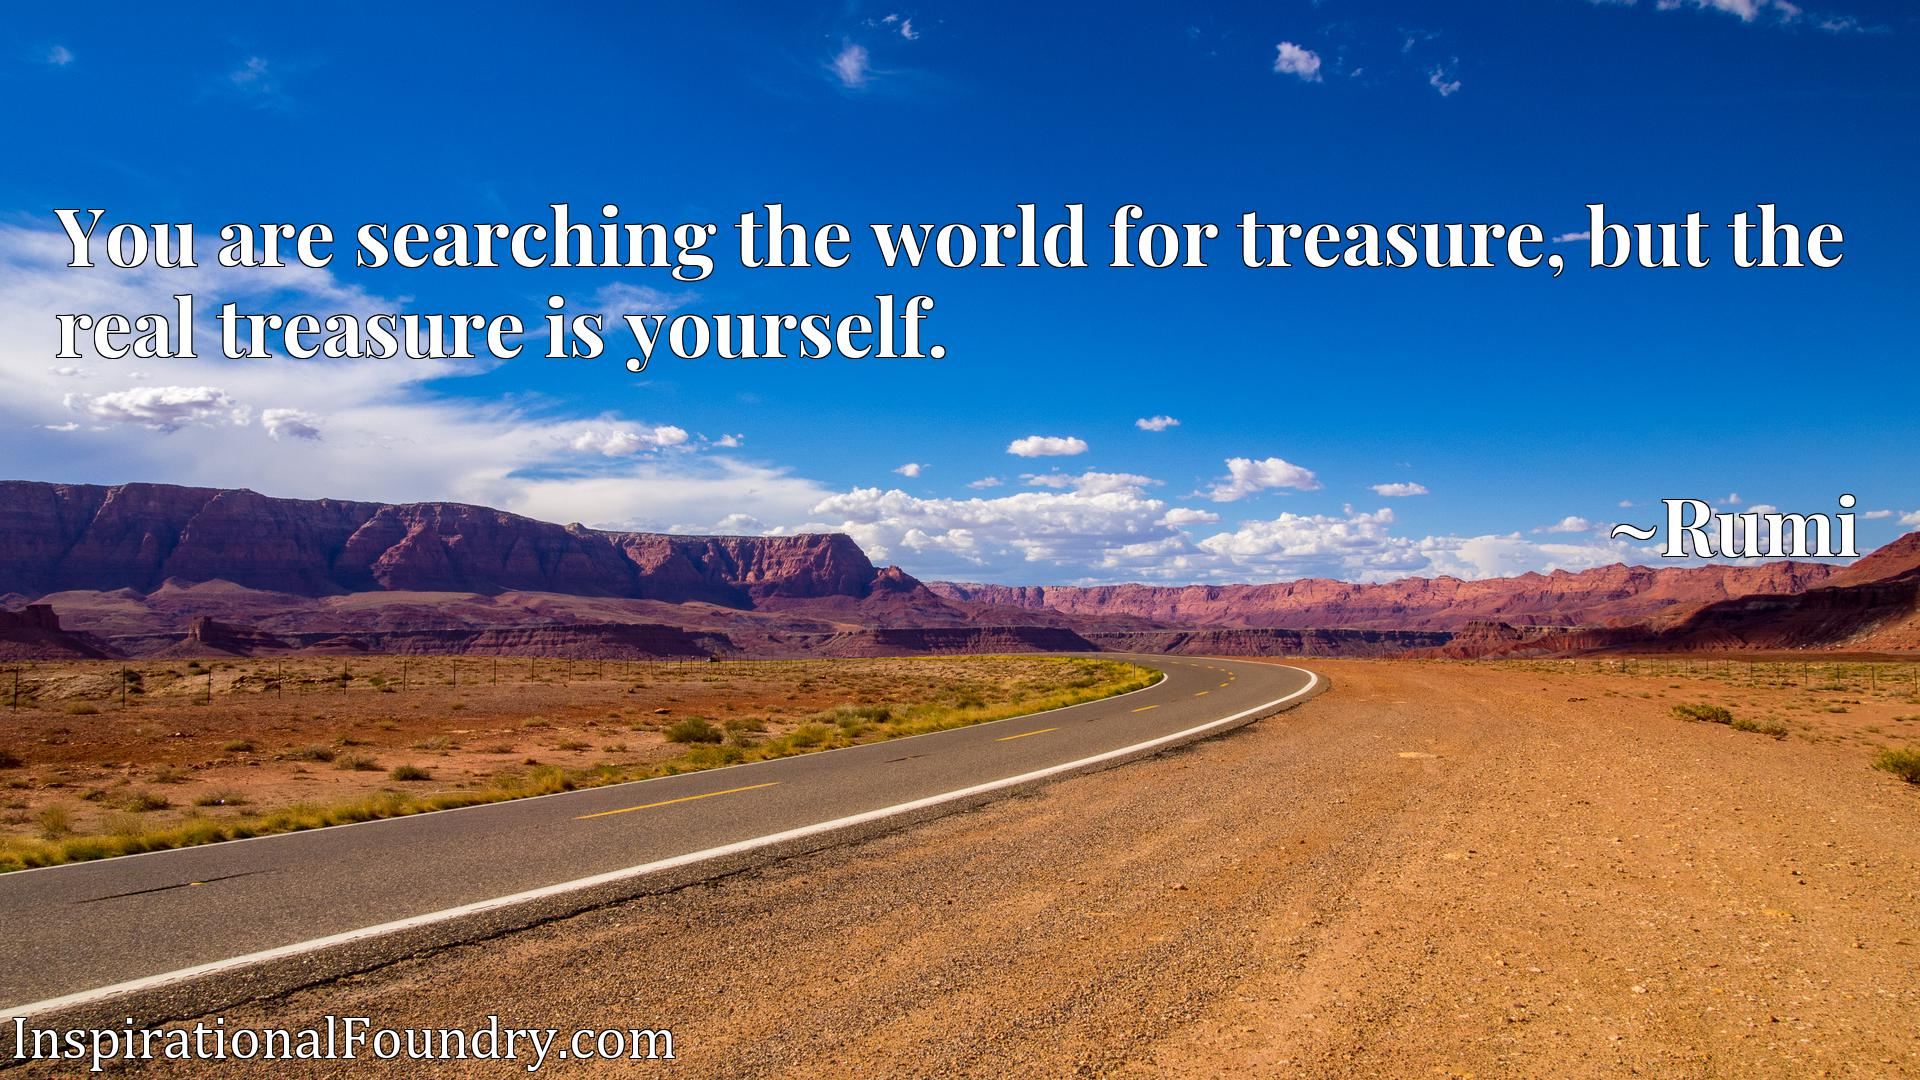 You are searching the world for treasure, but the real treasure is yourself.